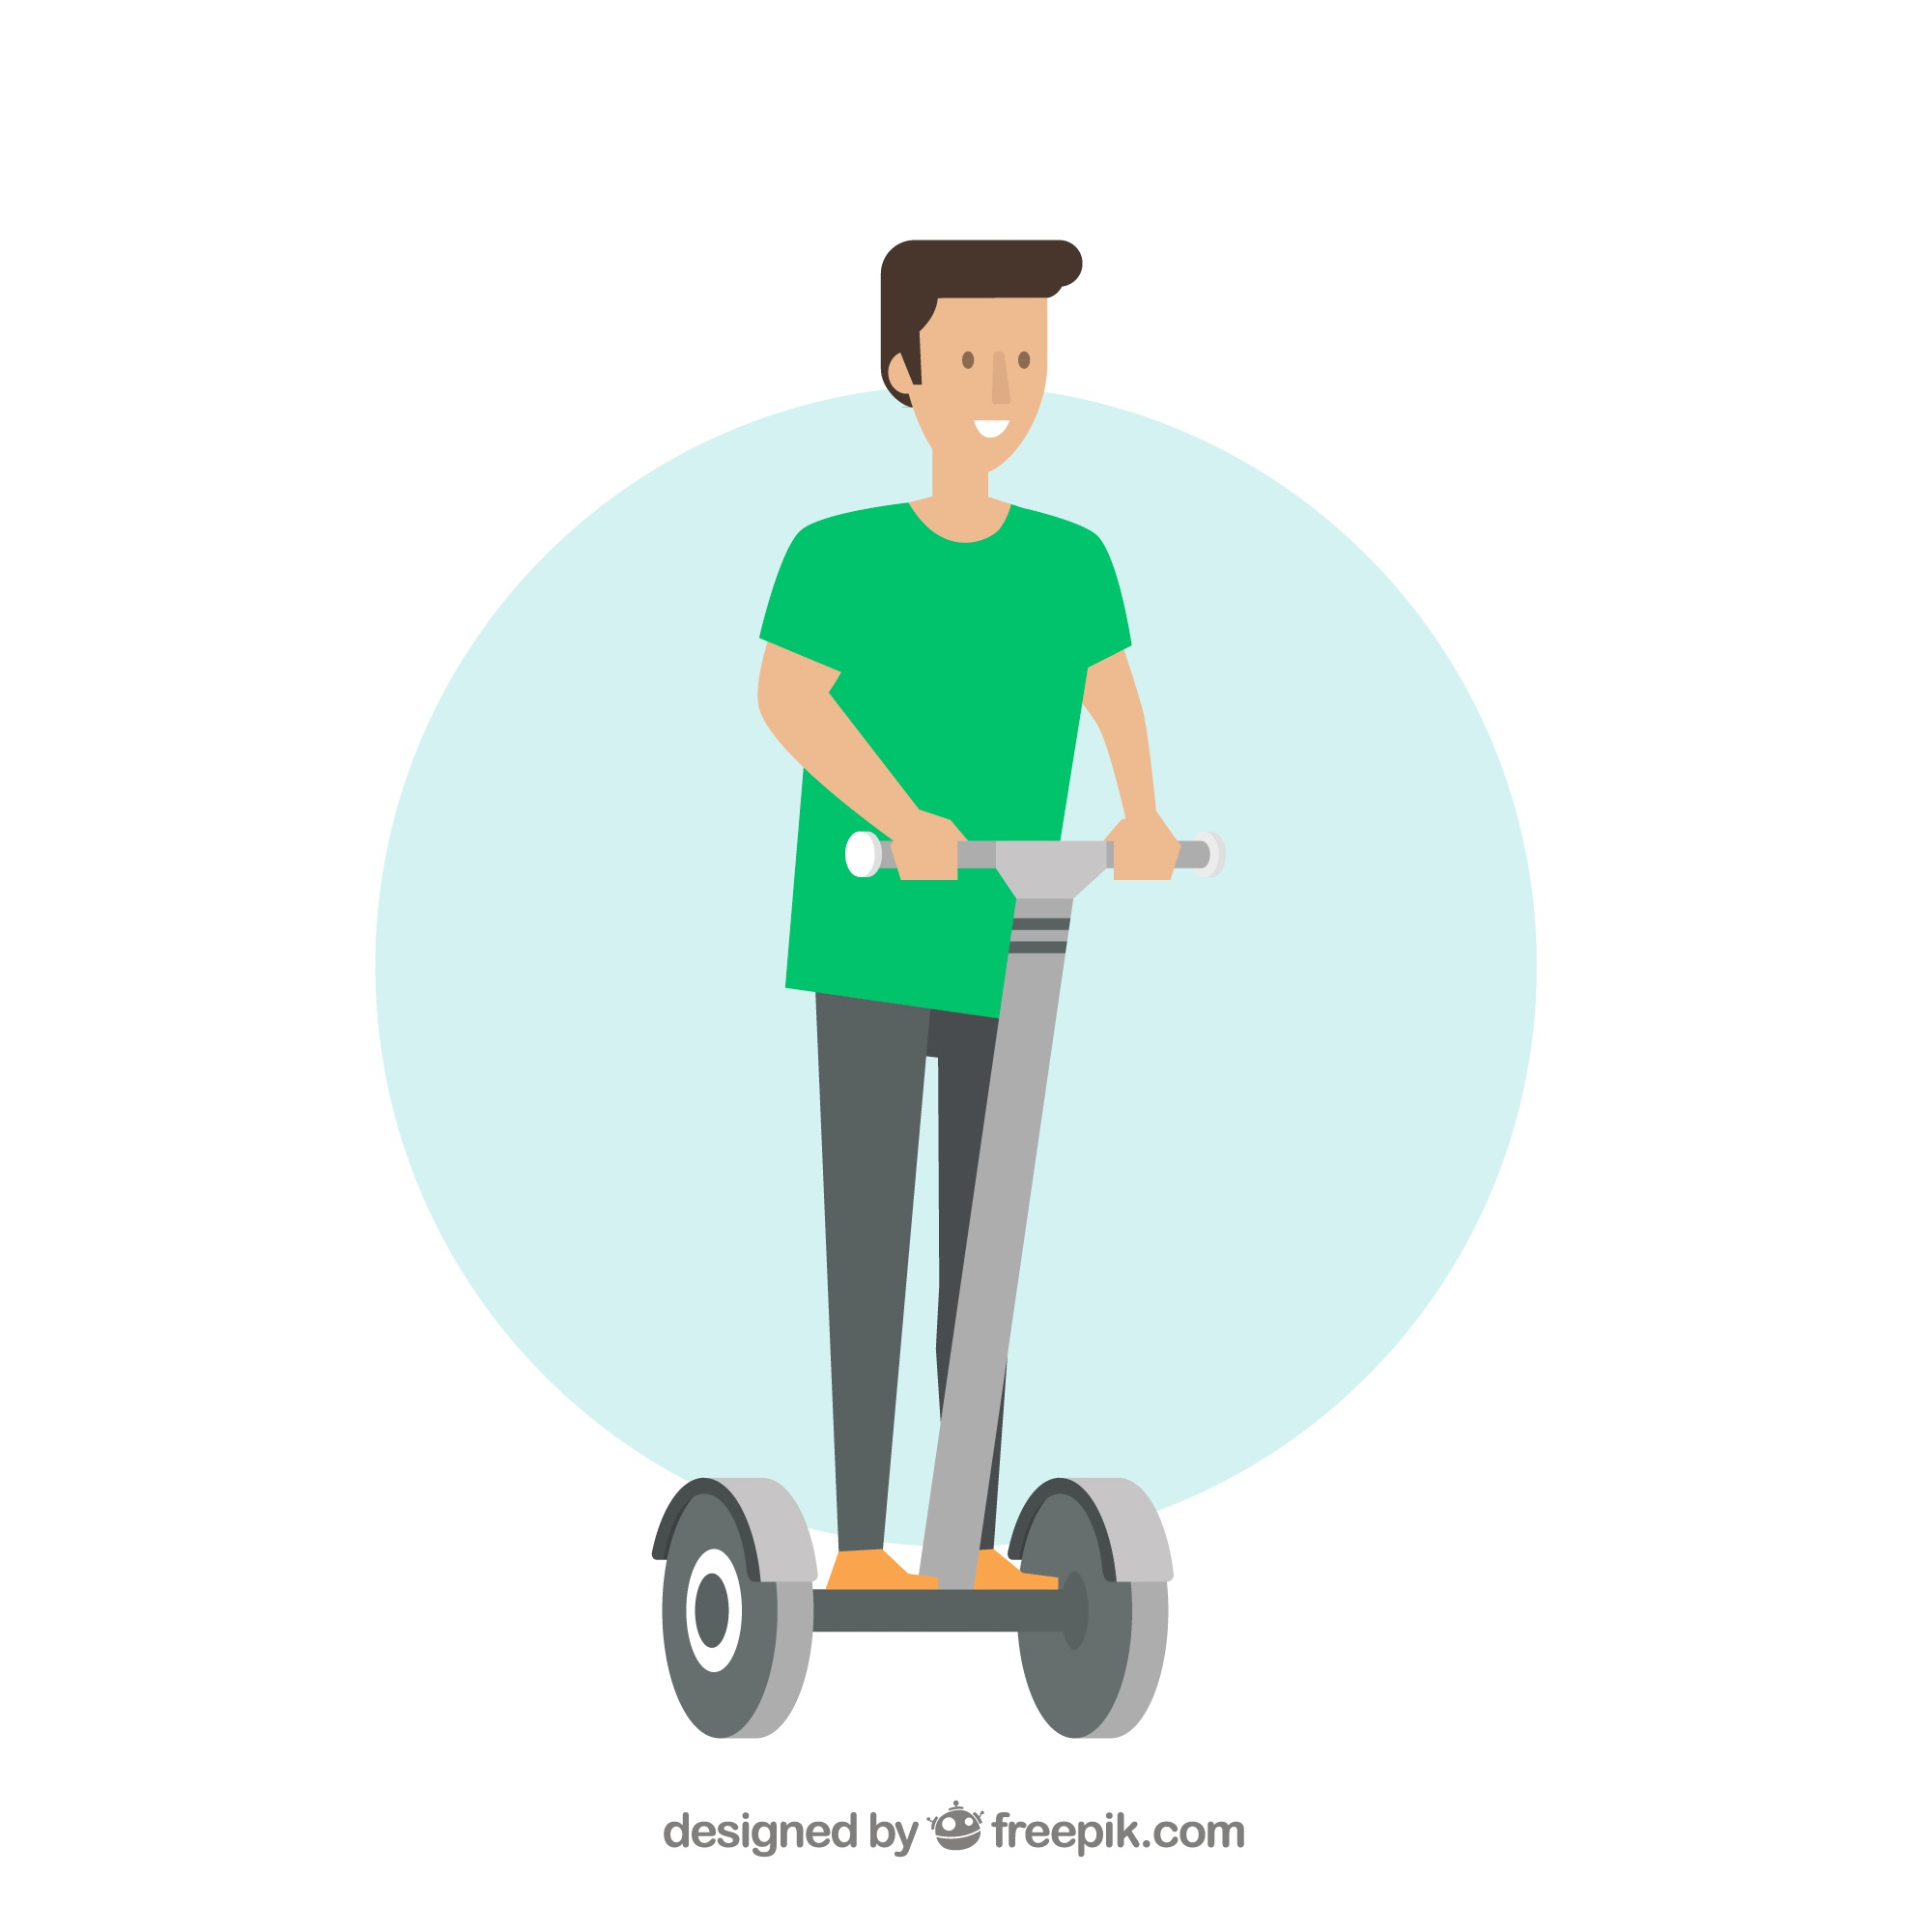 Guy on electric scooter